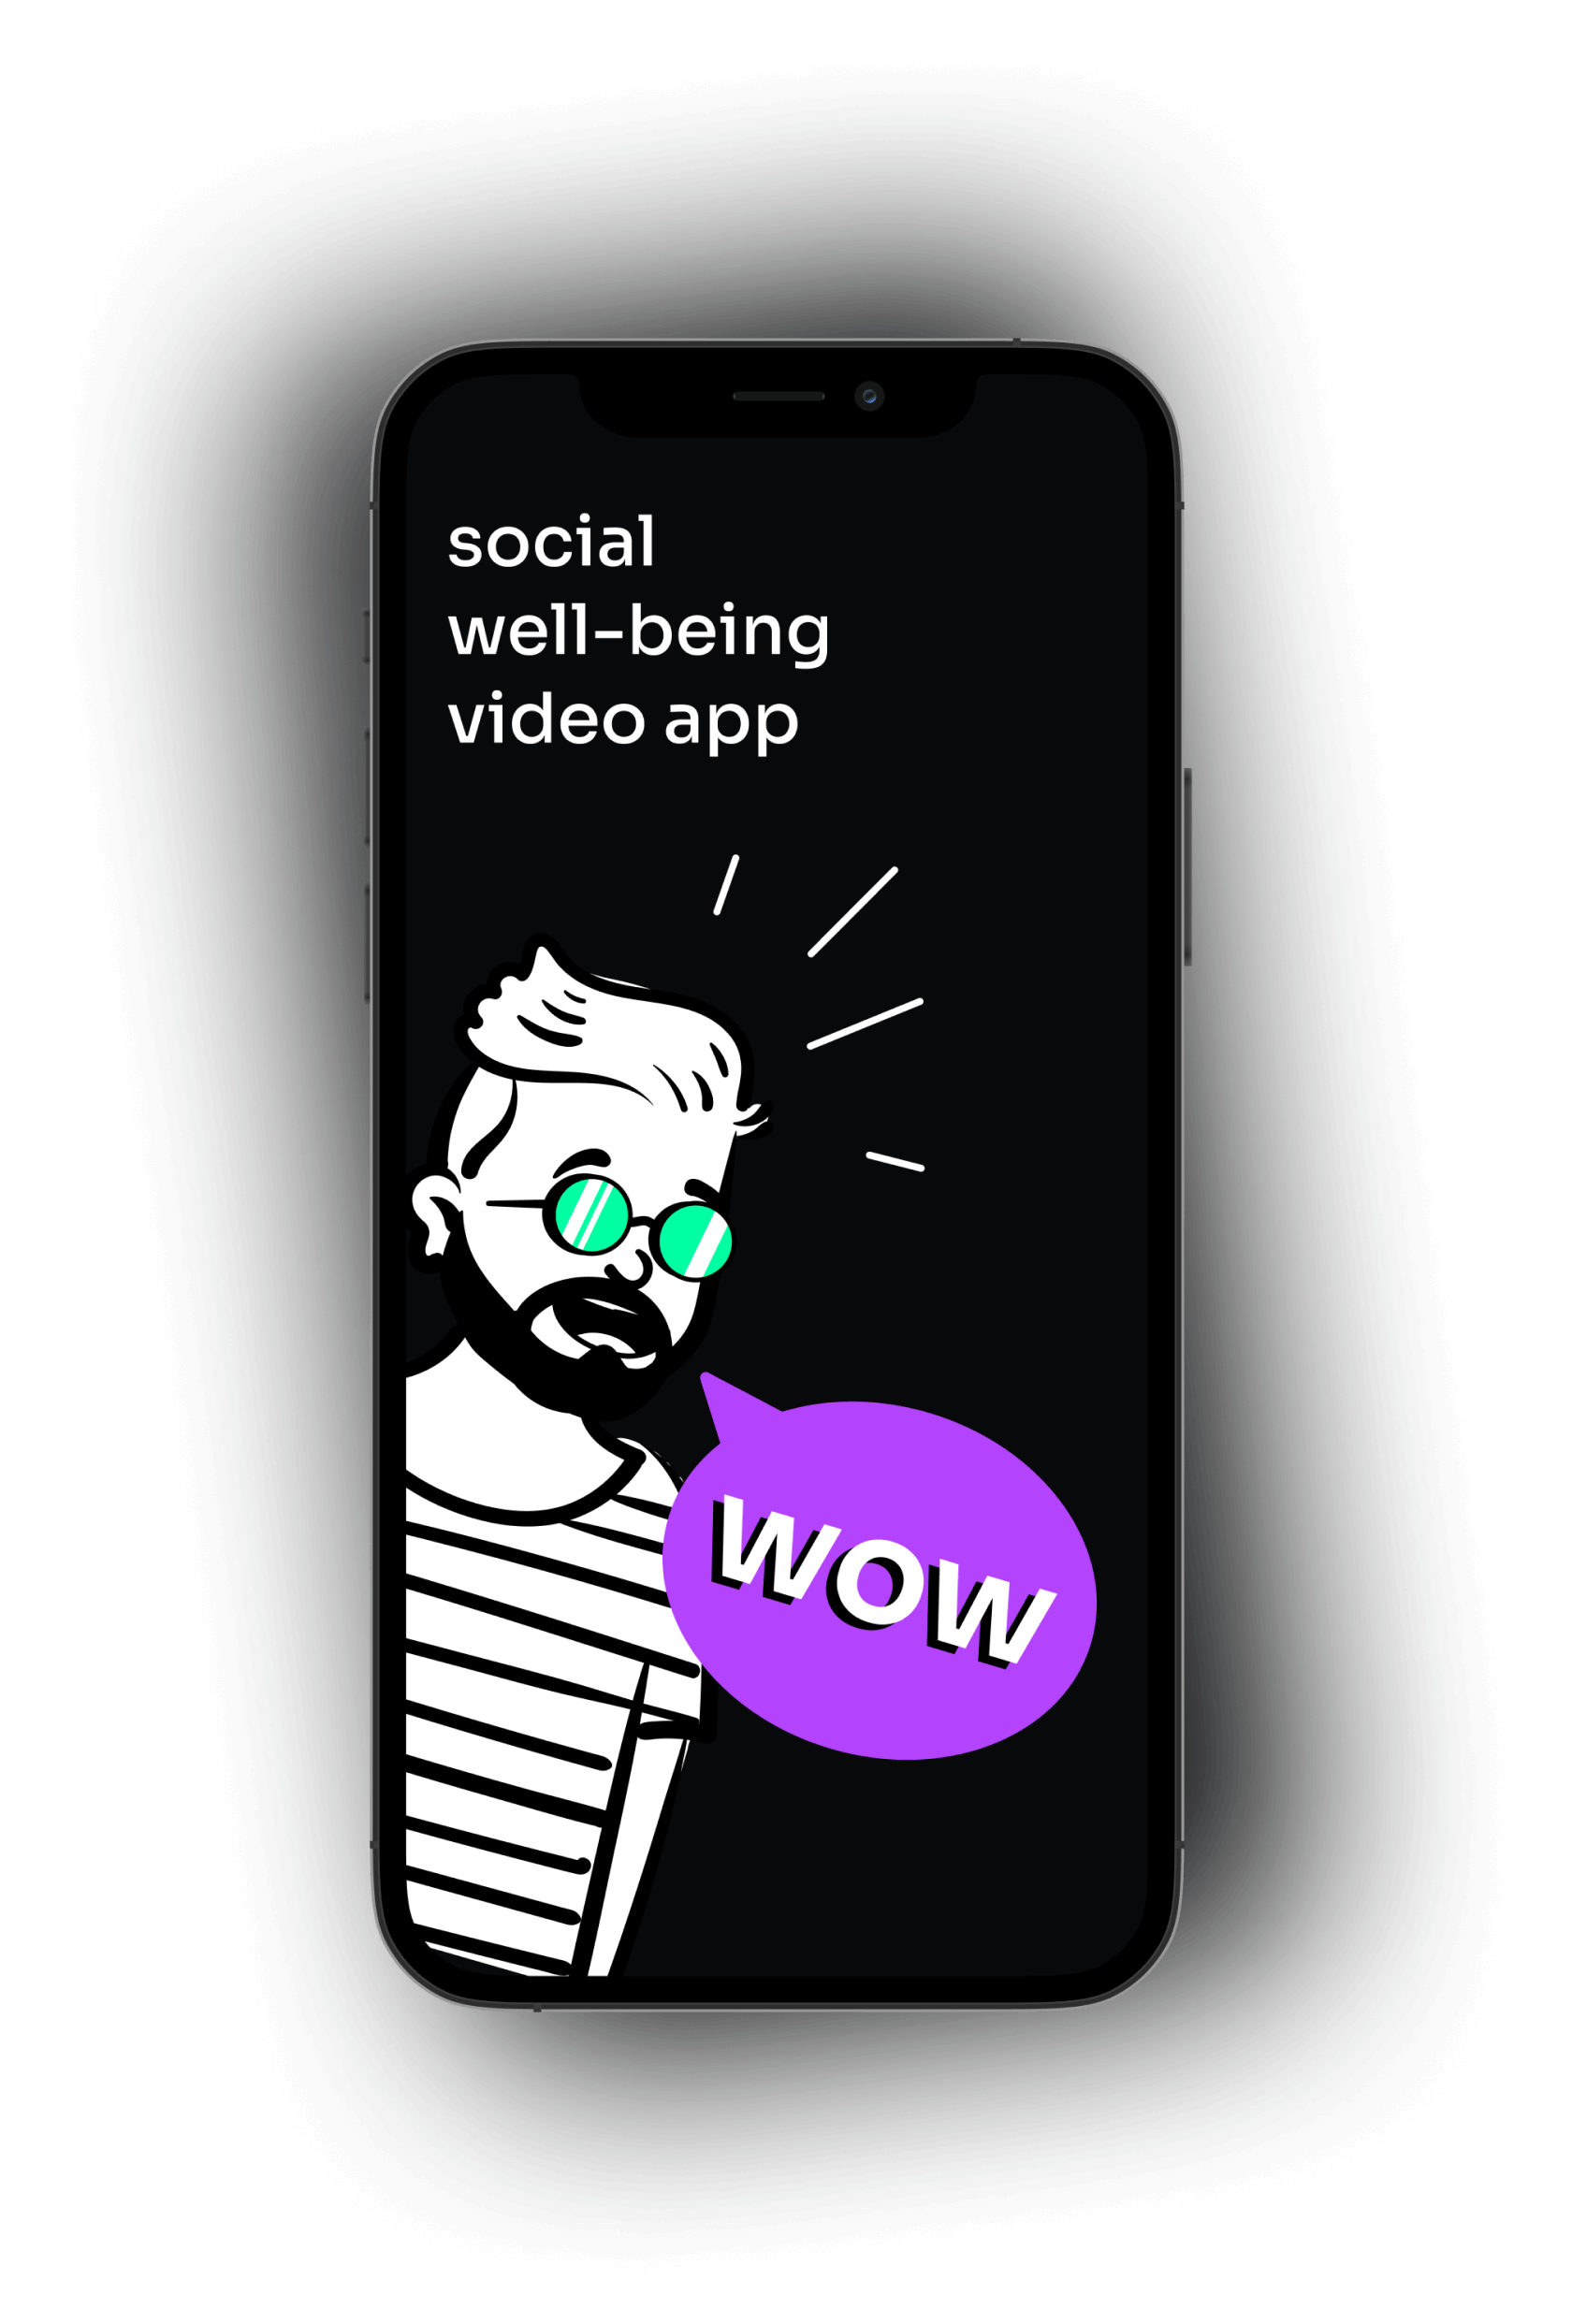 Social well-being app